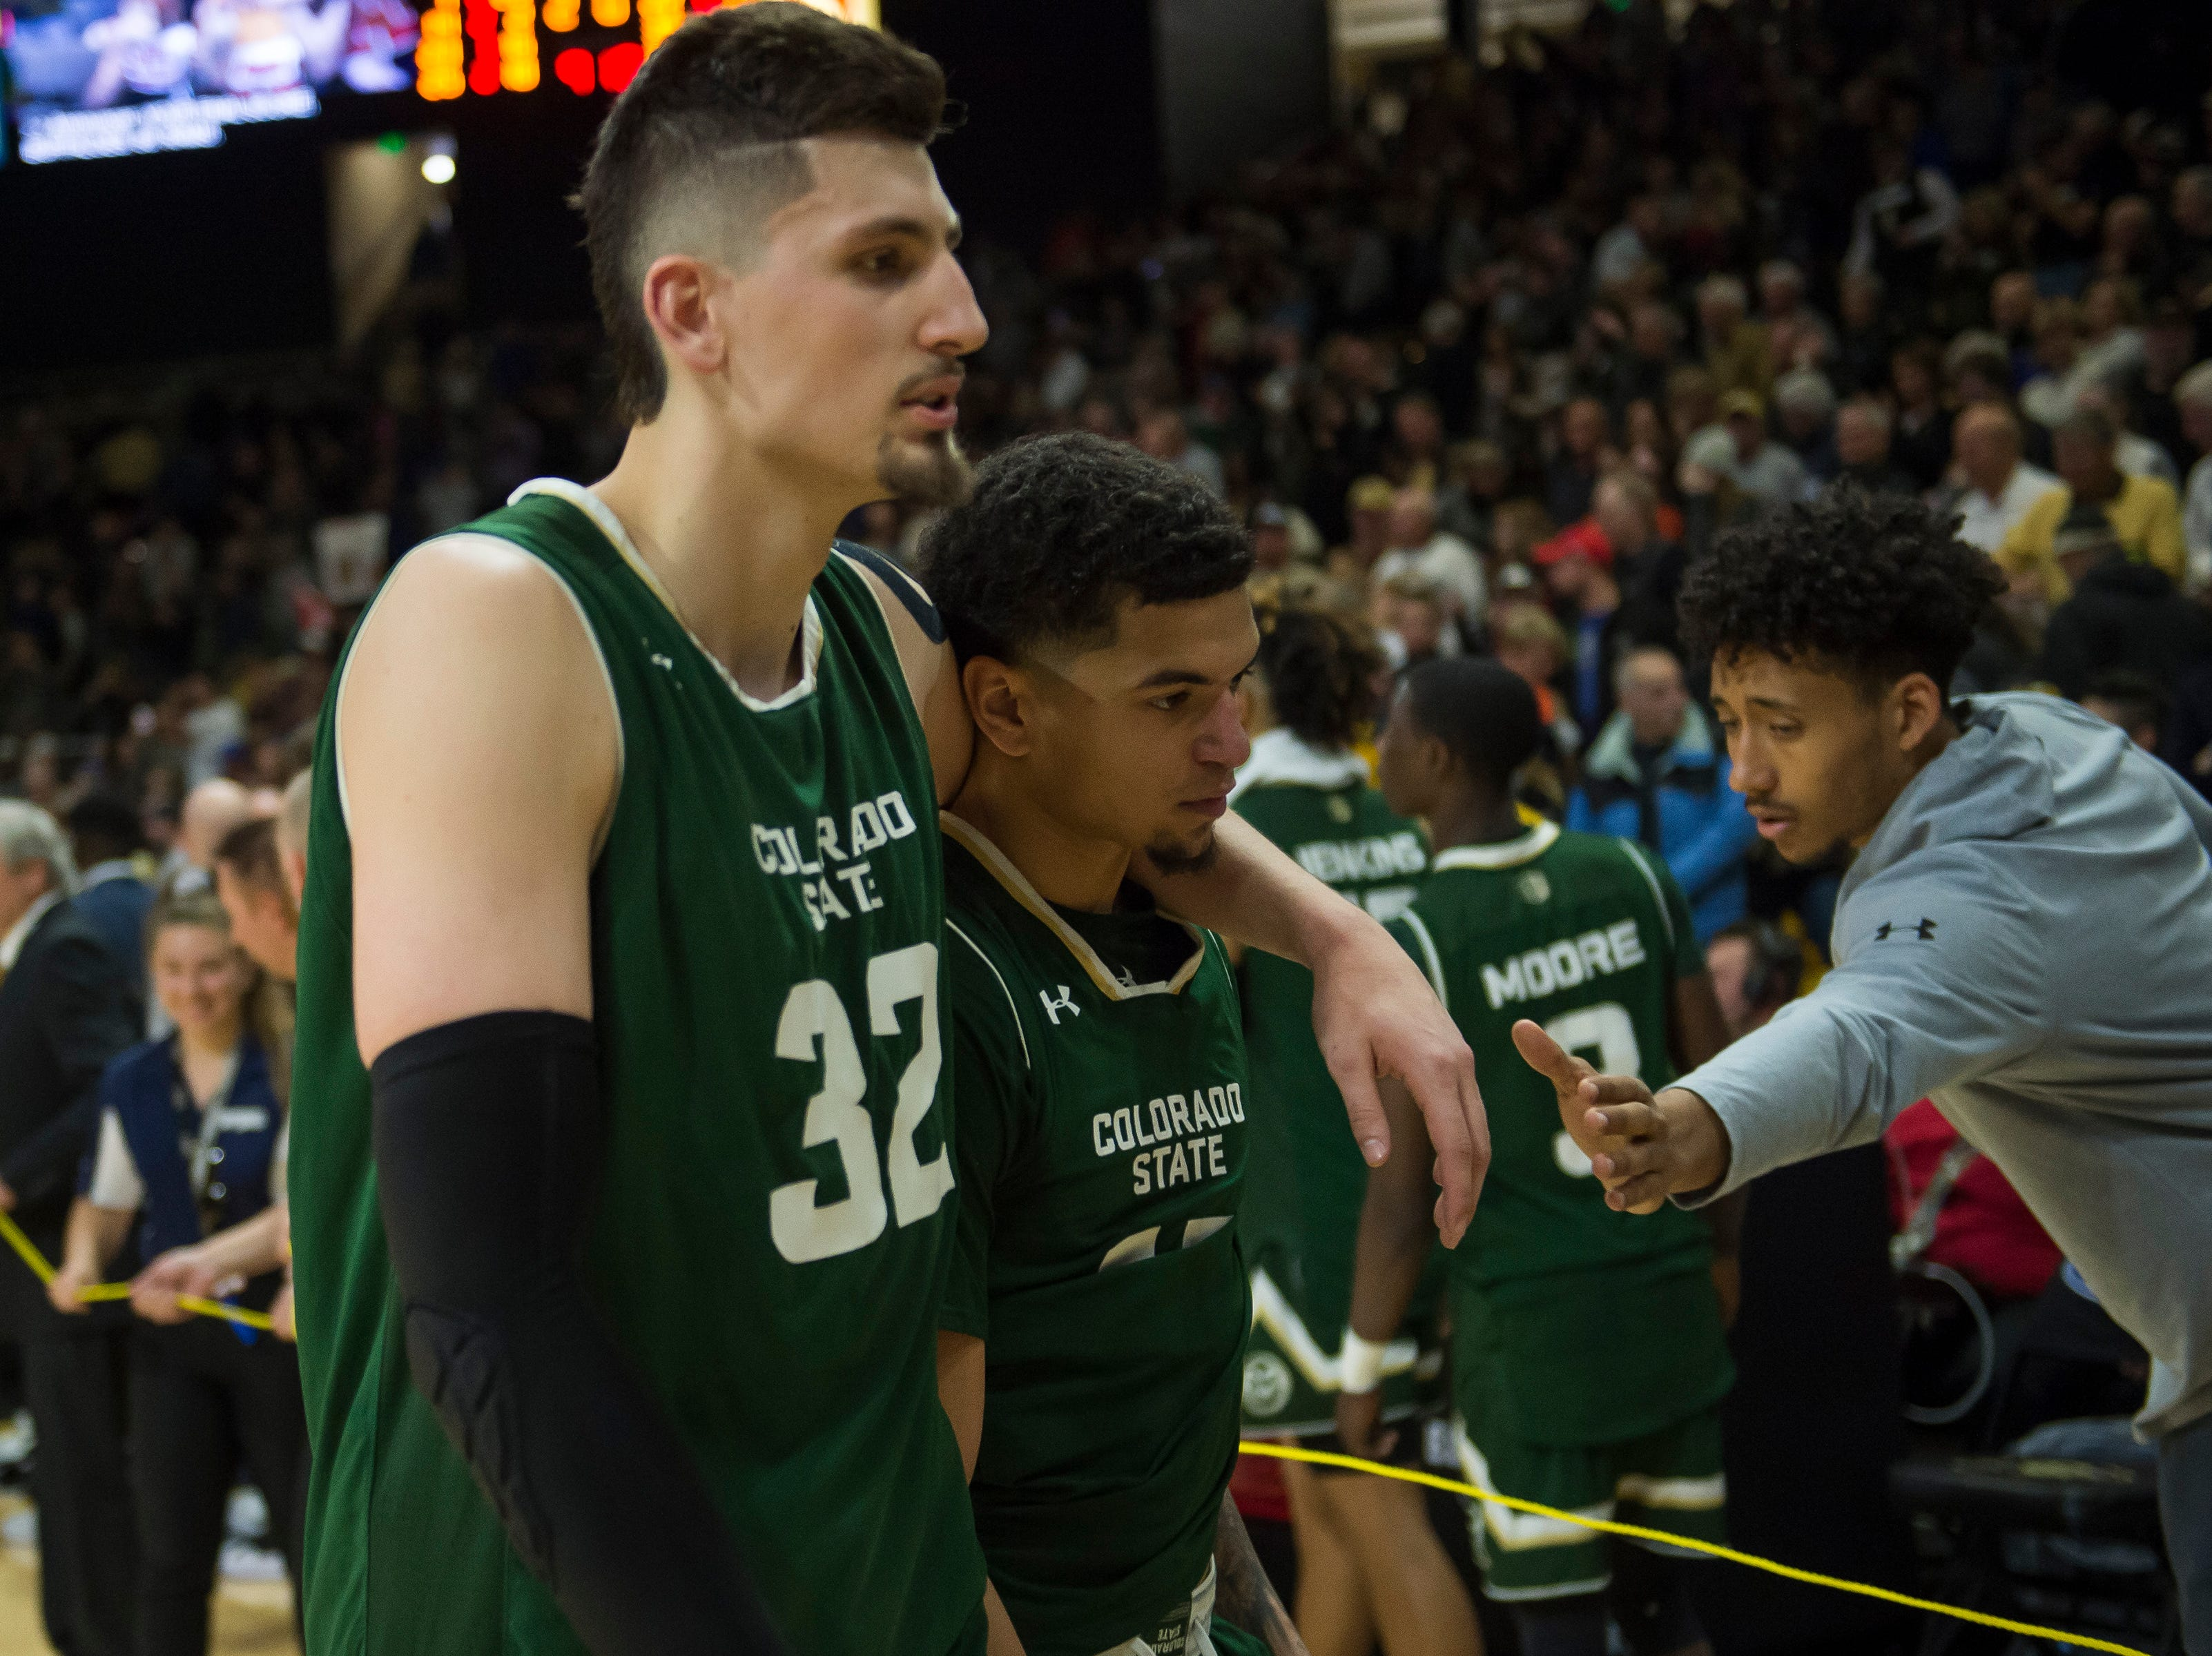 Colorado State University junior forward Nico Carvacho (32) comforts junior guard Anthony Masinton-Bonner (15) after losing a rivalry game against the University of Colorado on Saturday, Dec. 1, 2018, at the CU Event Center in Boulder, Colo.